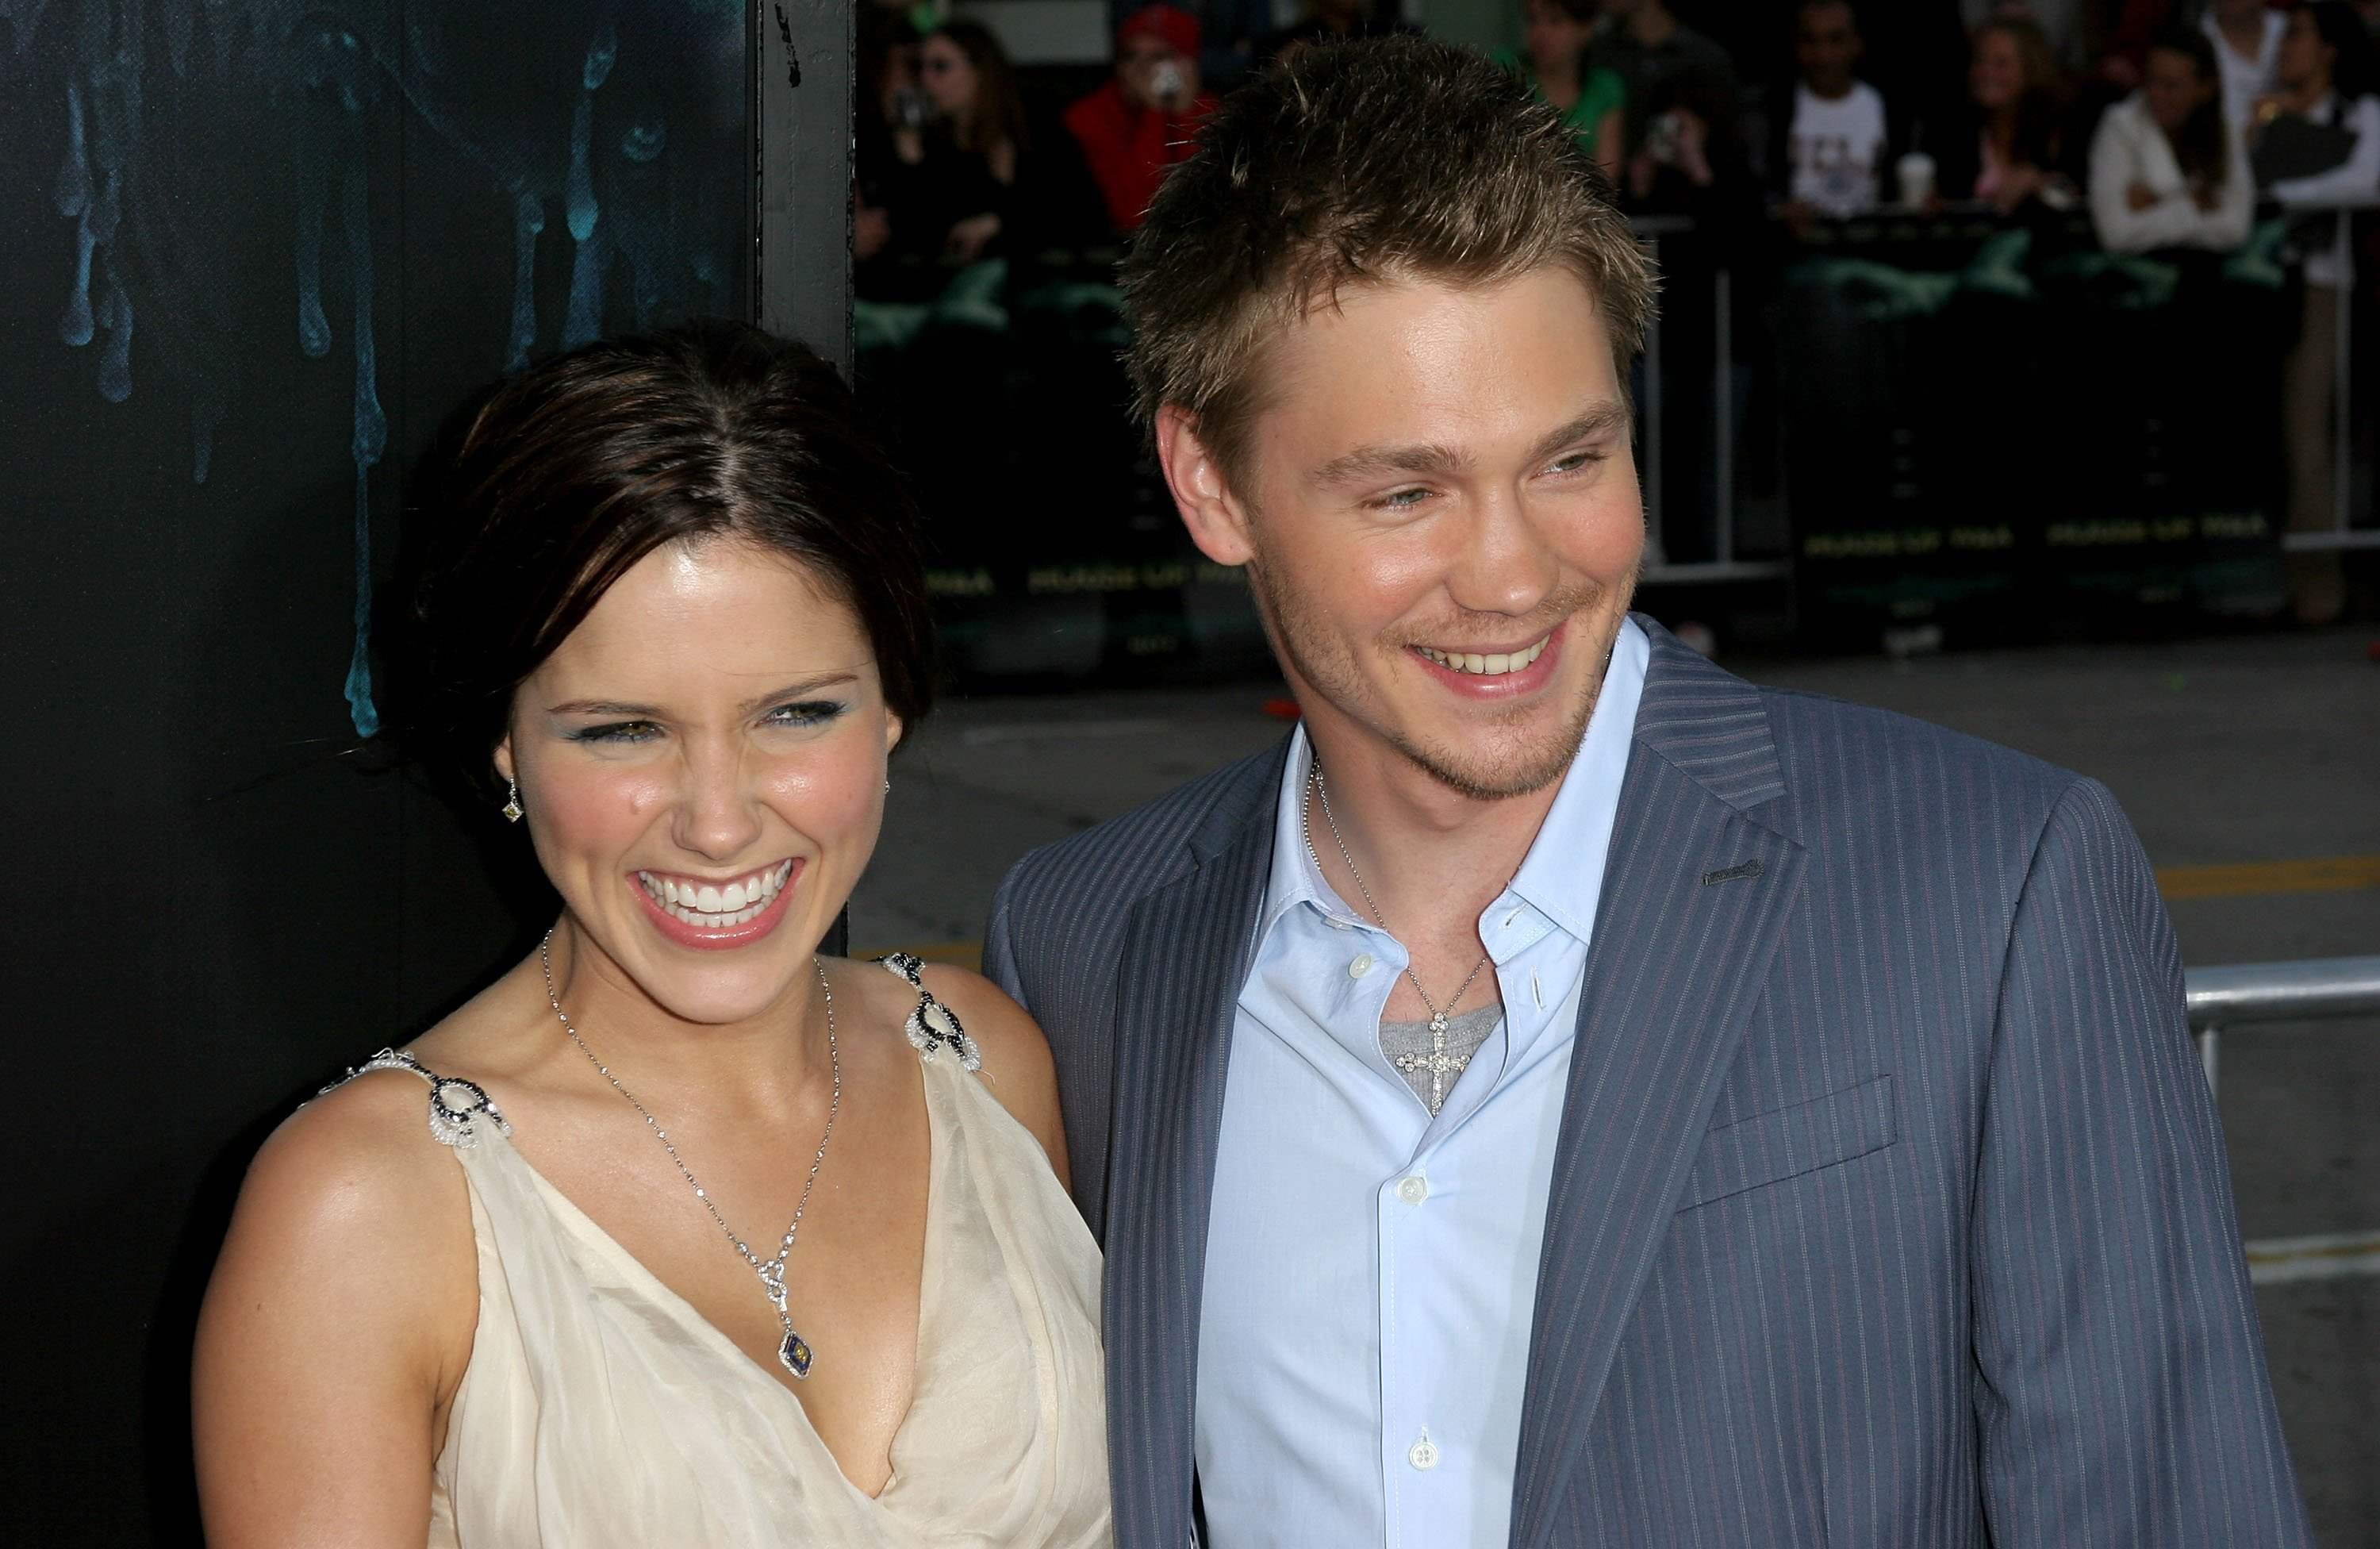 "Chad Michael Murry and Sophia Bush attend the premiere of ""House of Wax"" in Westwood, California on April 26, 2005 